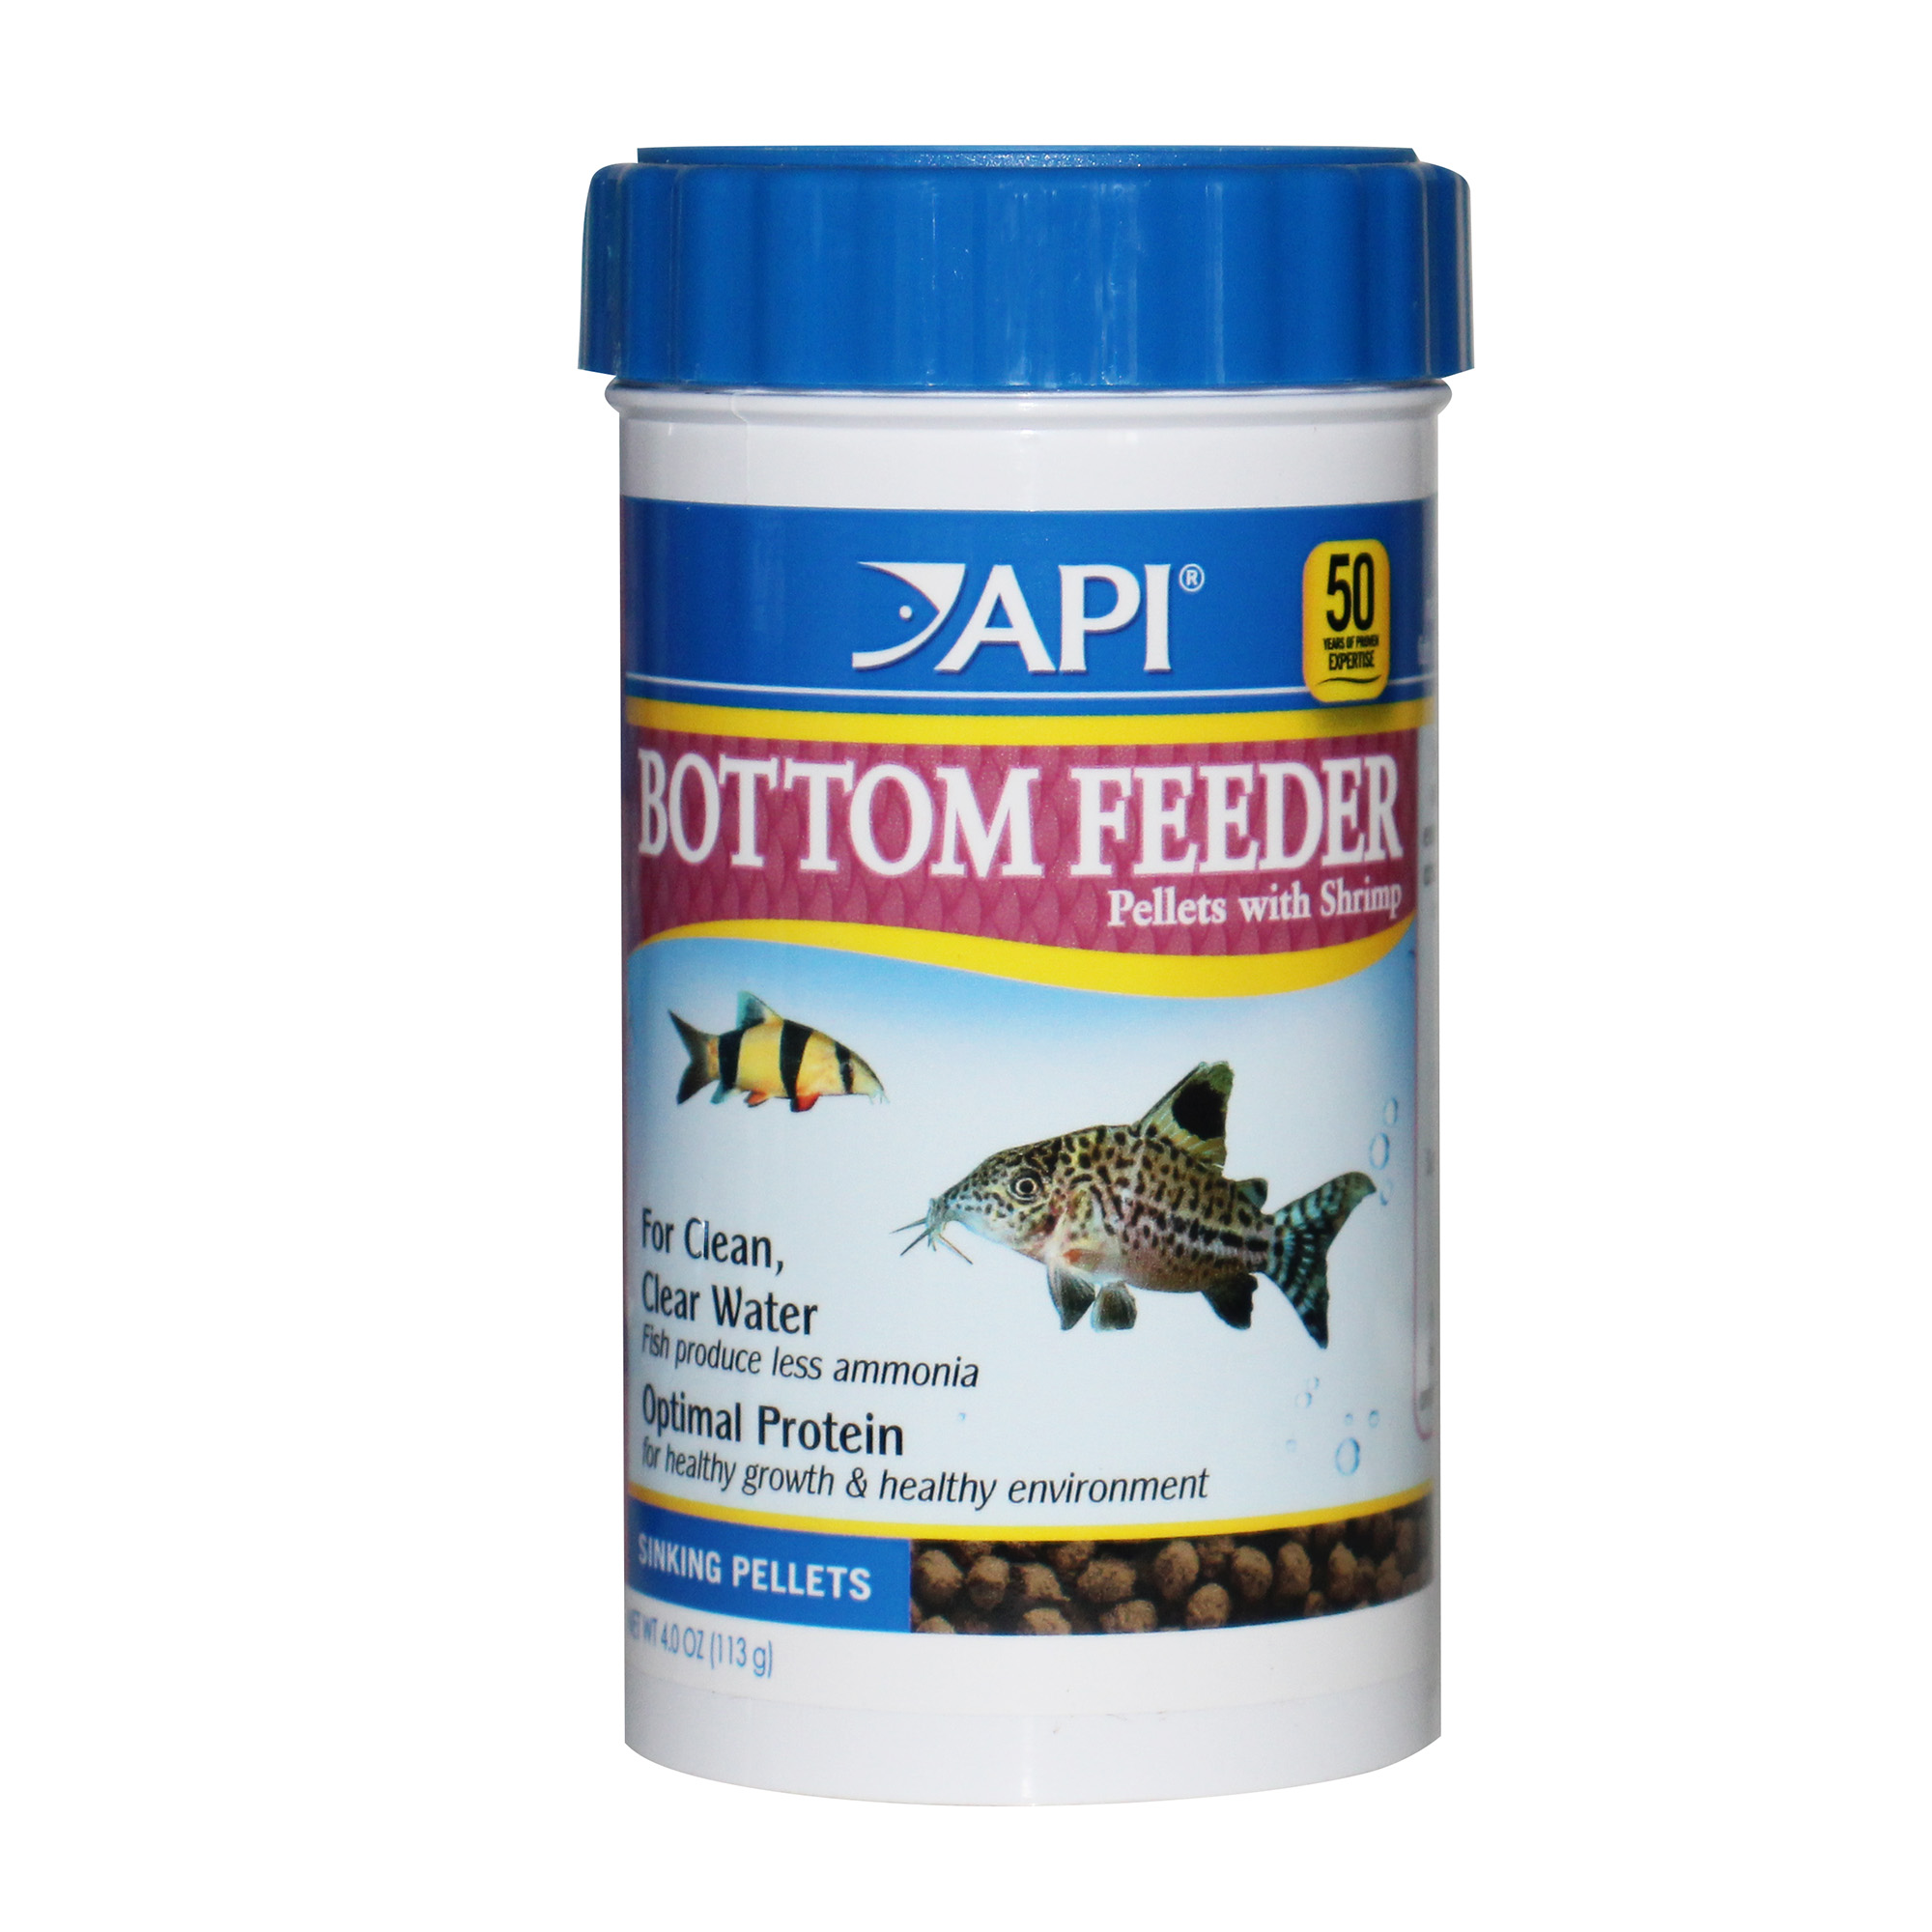 BOTTOM FEEDER PELLETS WITH SHRIMP